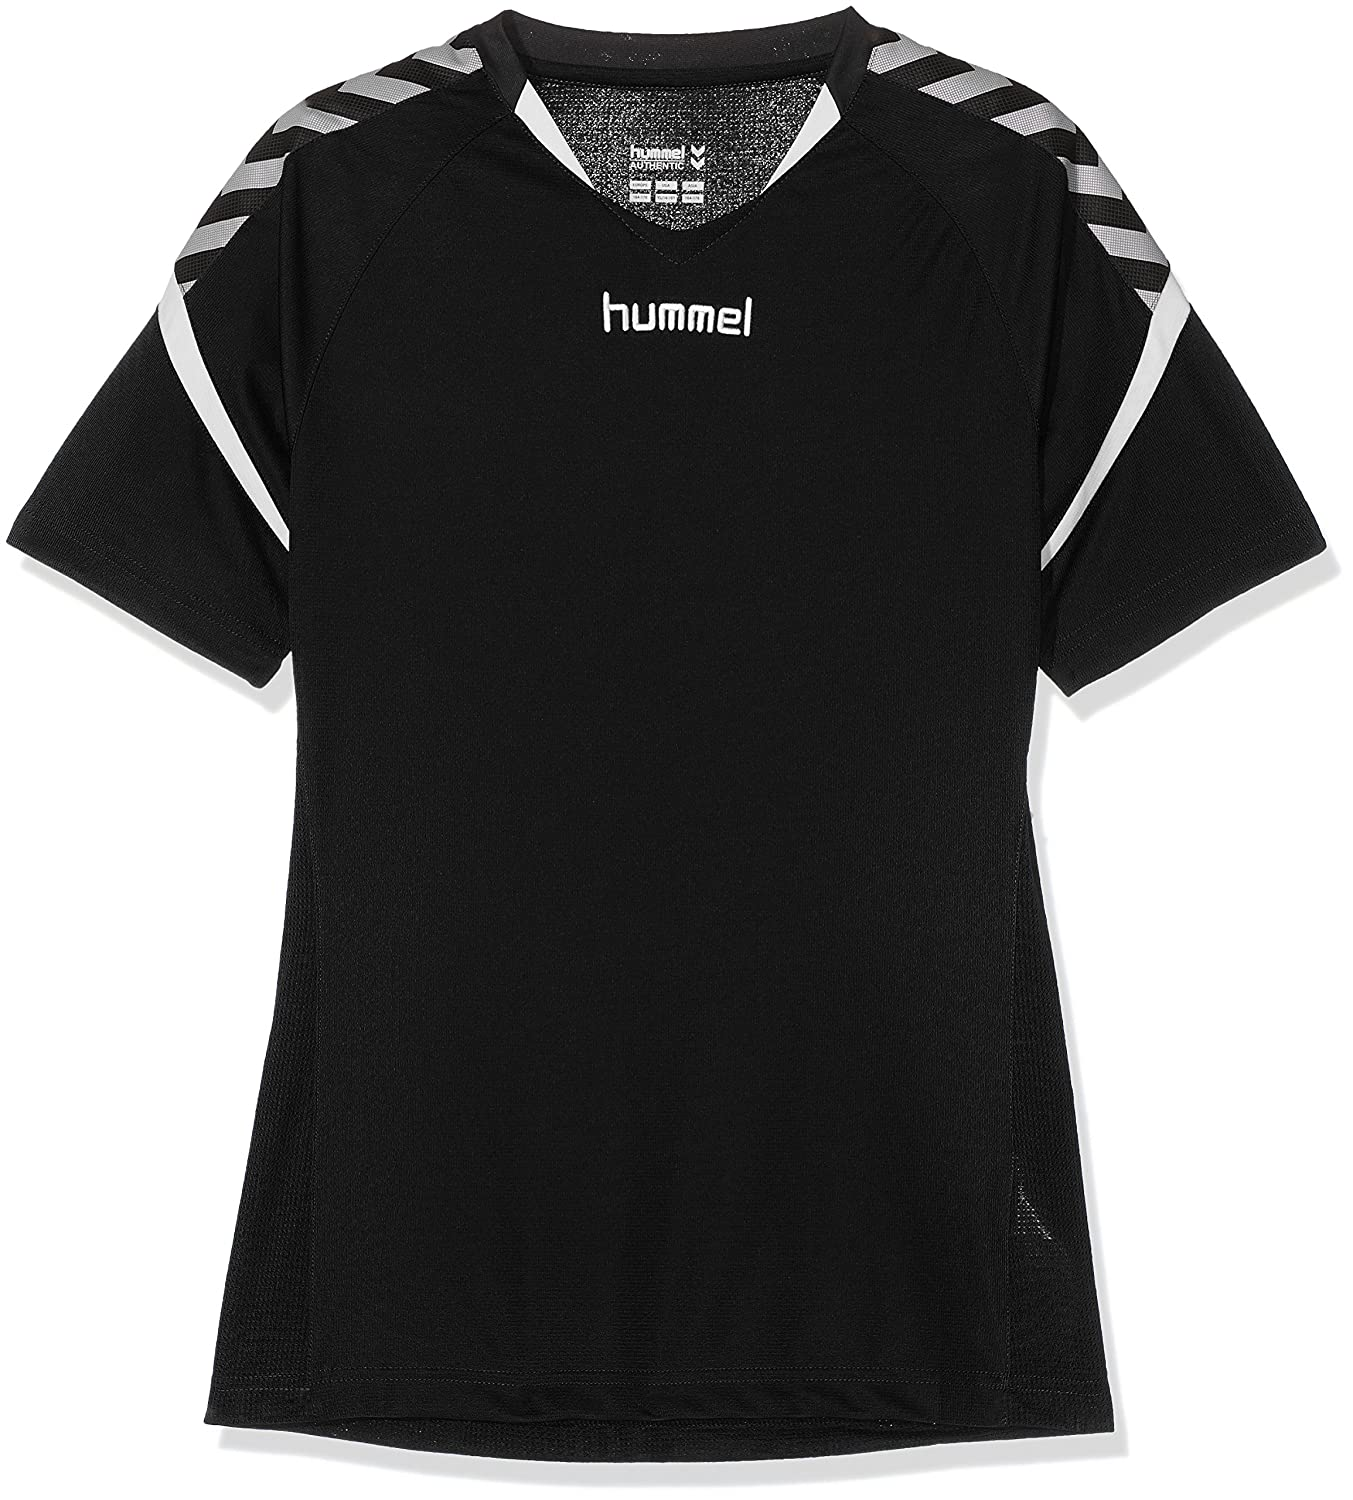 TALLA 116-128. hummel Niños AUTH. Charge Short Sleeve Poly Jersey Camiseta